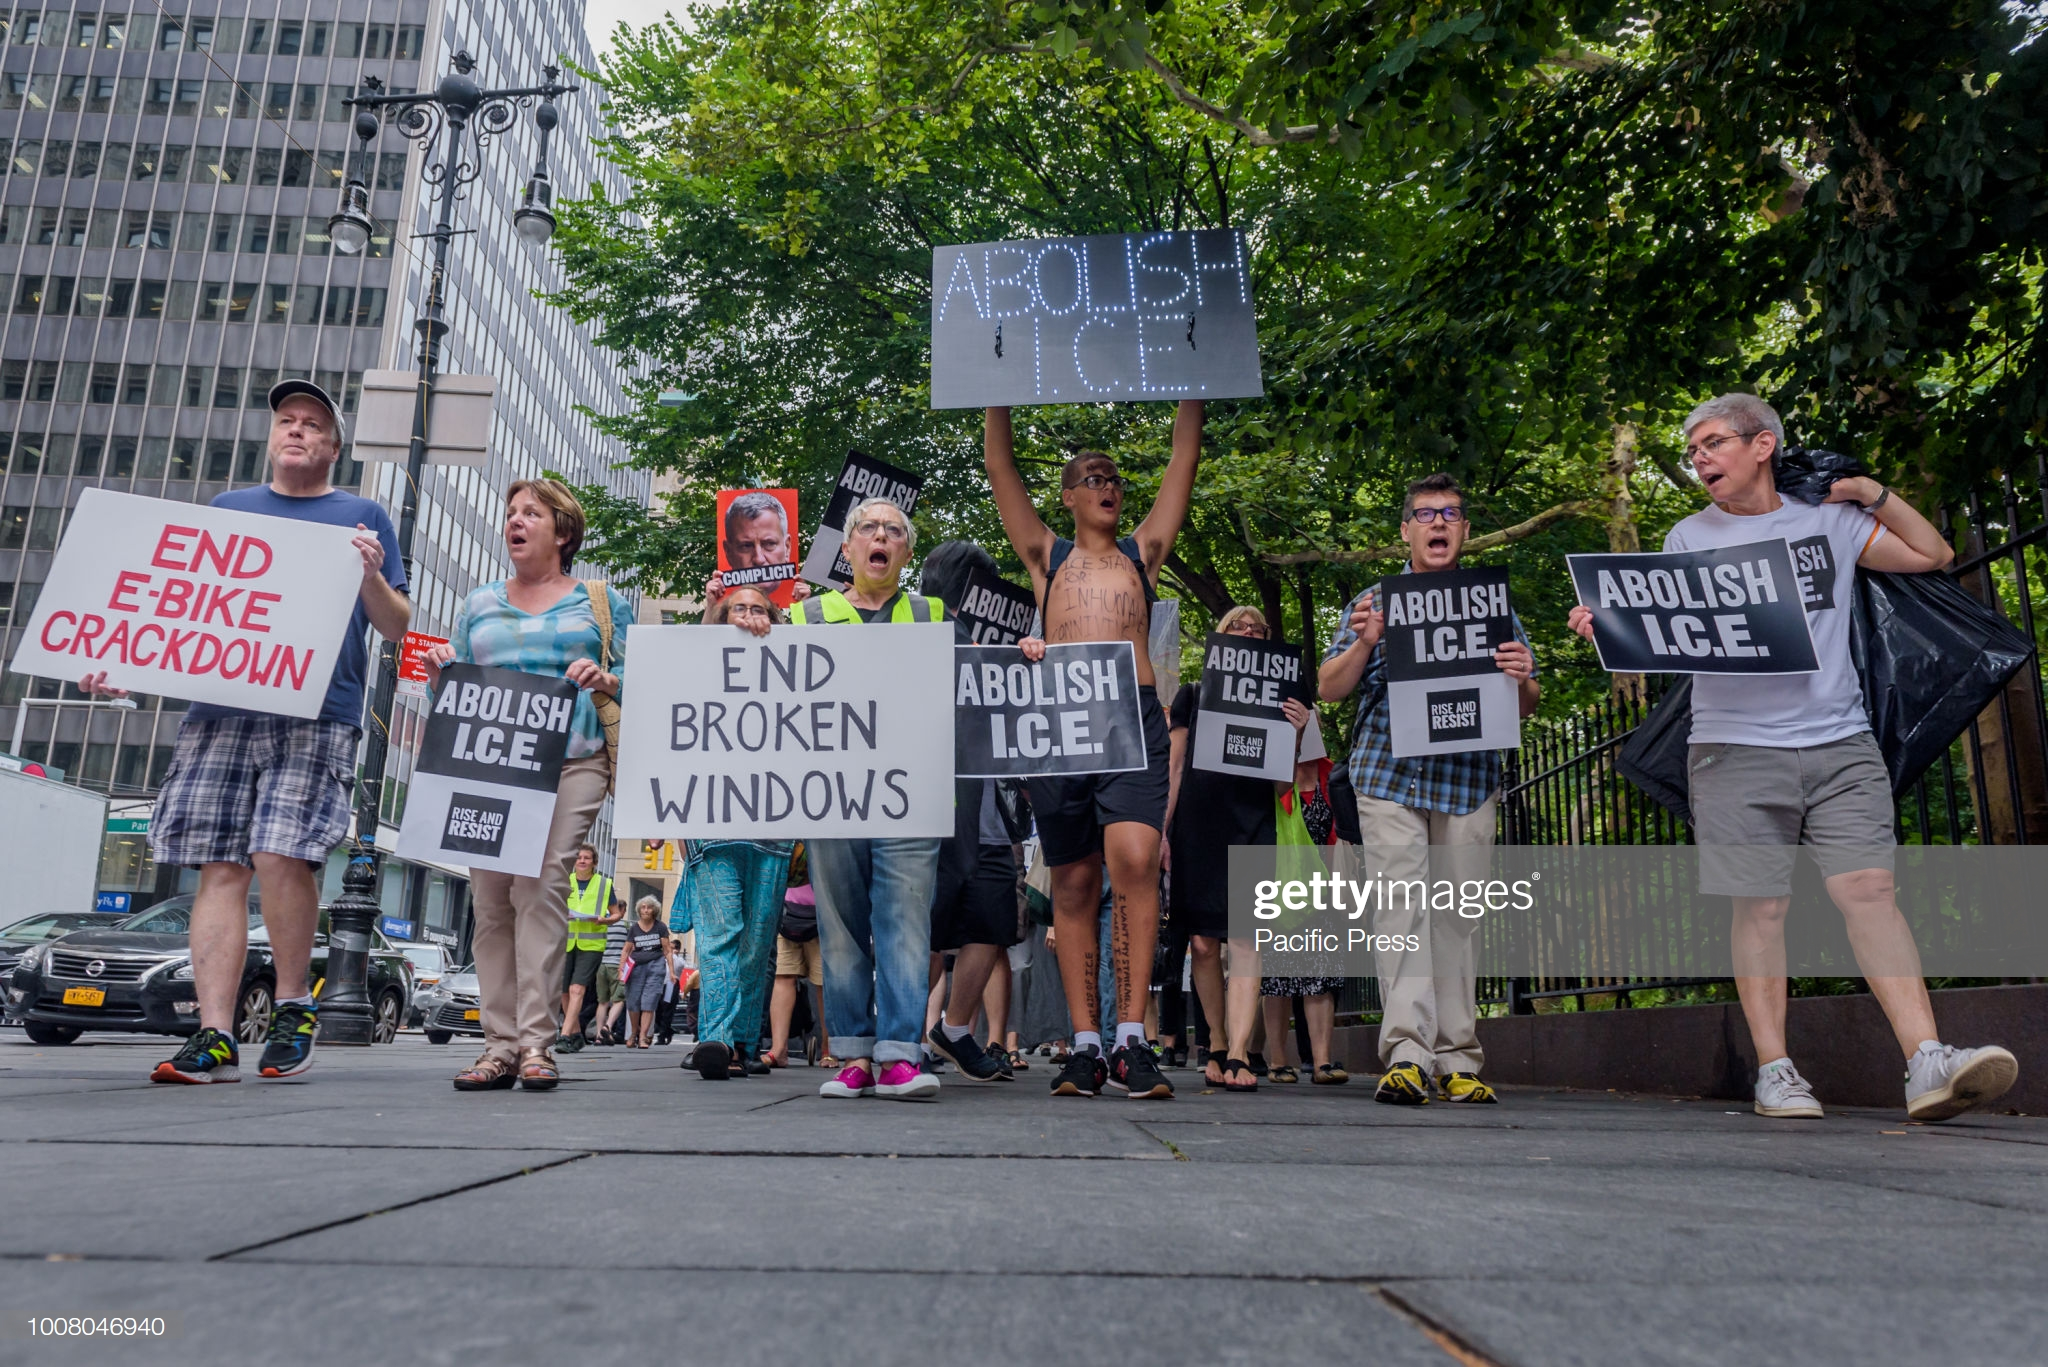 CITY HALL, NEW YORK, UNITED STATES - 2018/07/30: Members of the activist group Rise and Resist organized a protest outside New York City Hall on July 30, 2018 as part of the four days of protests targeting local politicians and businesses profiting from ICE. Activists demand Mayor De Blasio to follow the lead of other cities, states, and lawmakers by standing up to ICE. (Photo by Erik McGregor/Pacific Press/LightRocket via Getty Images)